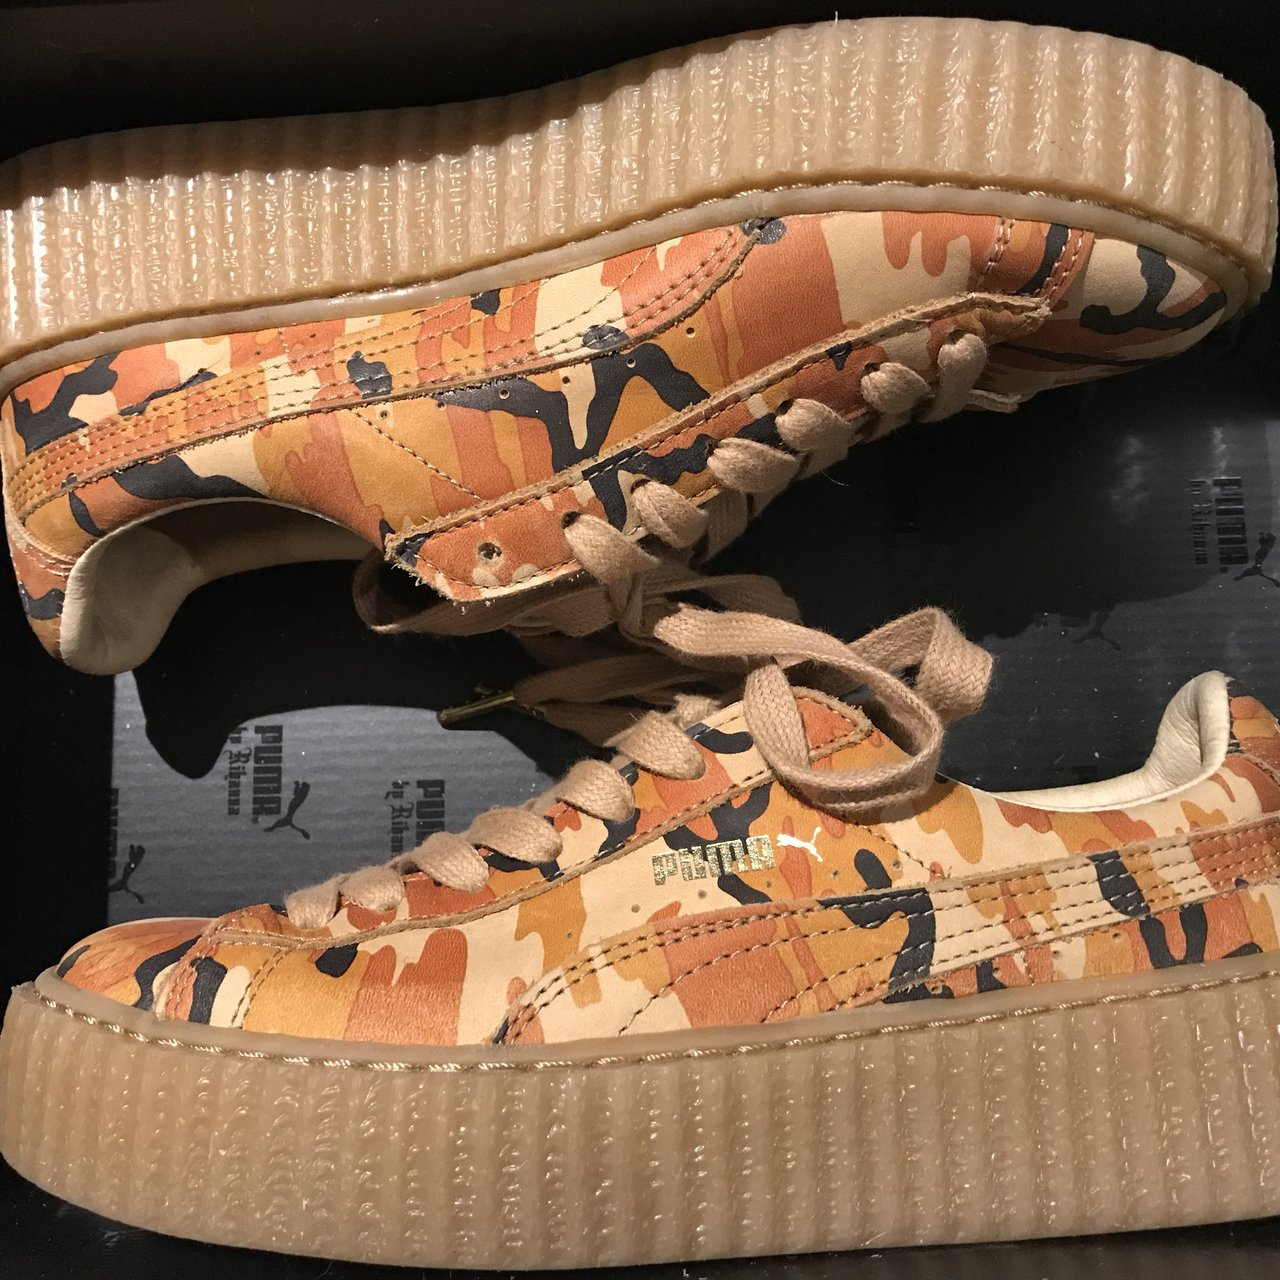 54740c33e23493 Rihanna Fenty x Puma orange camo creepers 🧡 I bought these - Depop